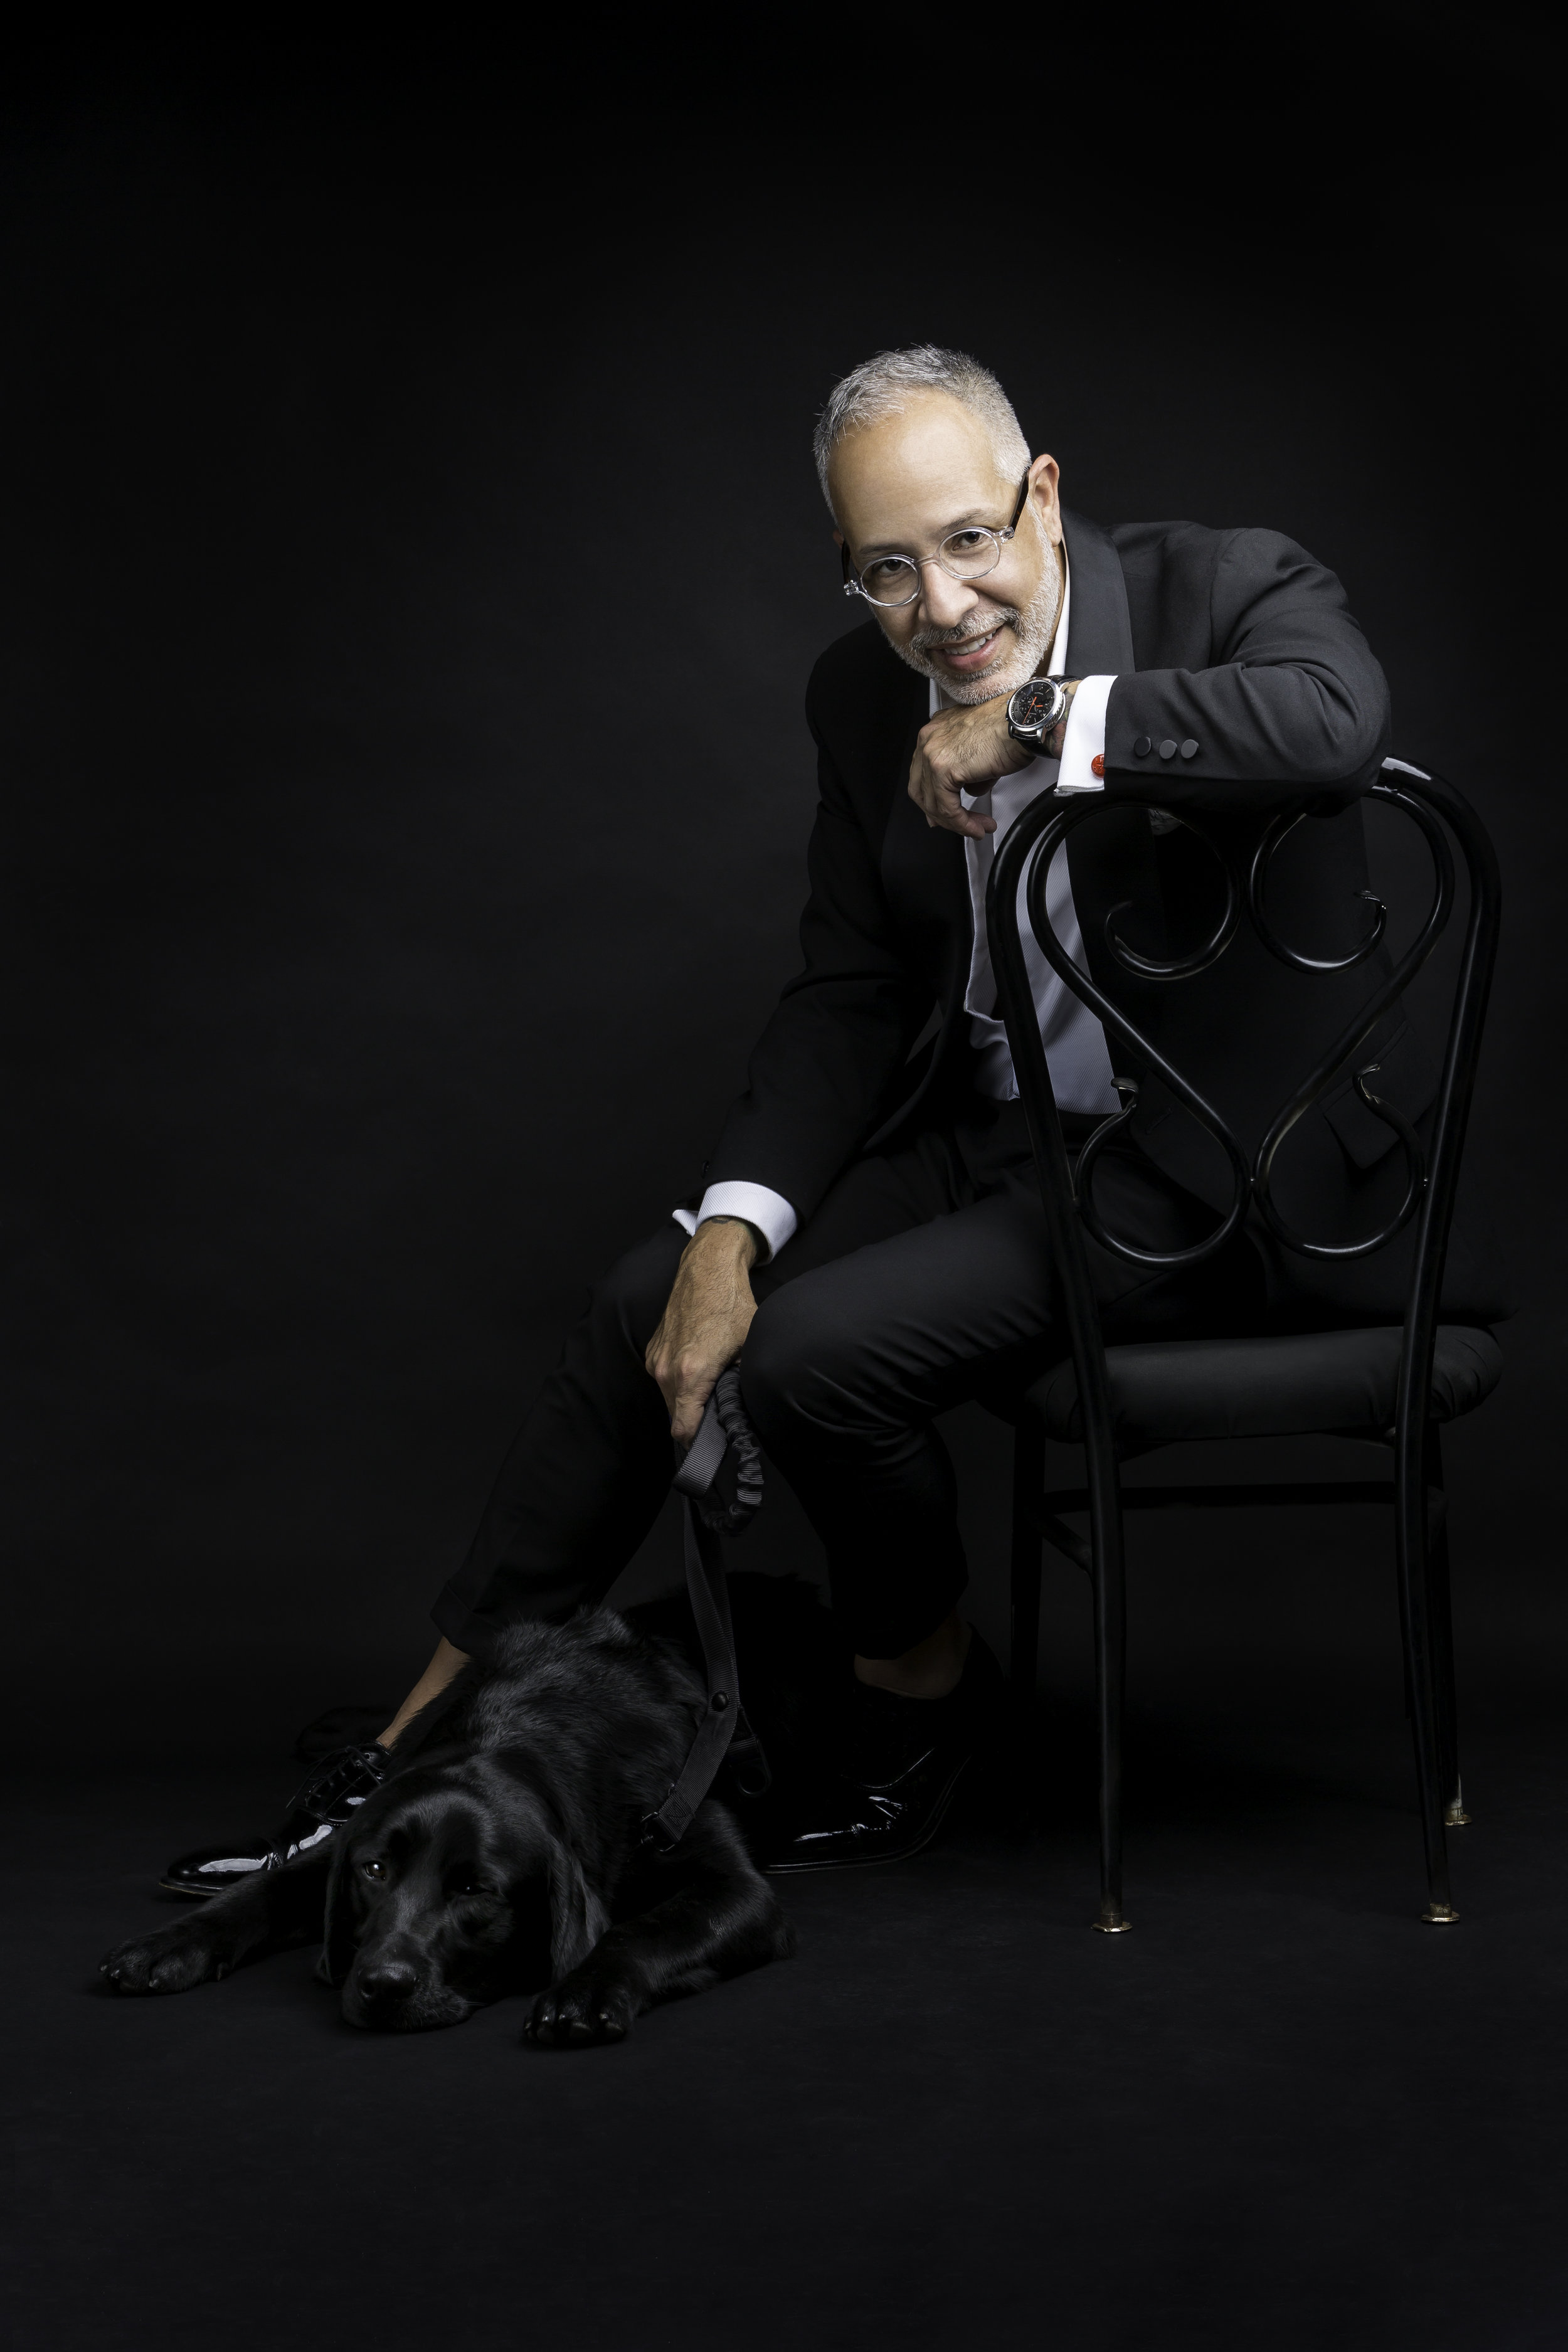 """E. Vincent Martinez pictured with """"puppy Vincent"""" from Canine Assistants. Photo by Tomas Espinoza Photography"""